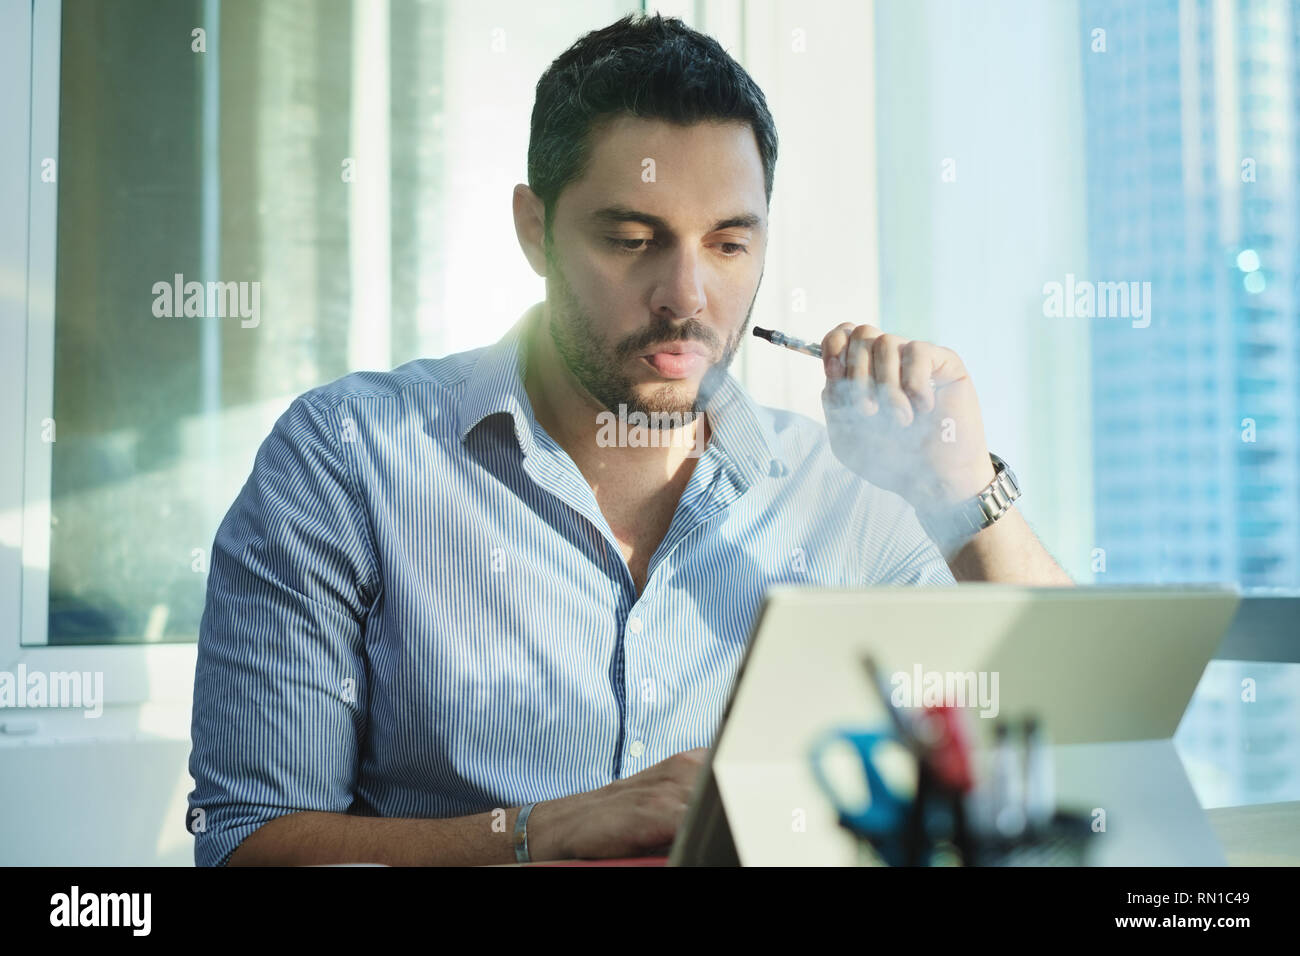 Ex-smoker Man Smoking Electronic Cigarette In Office While Working - Stock Image